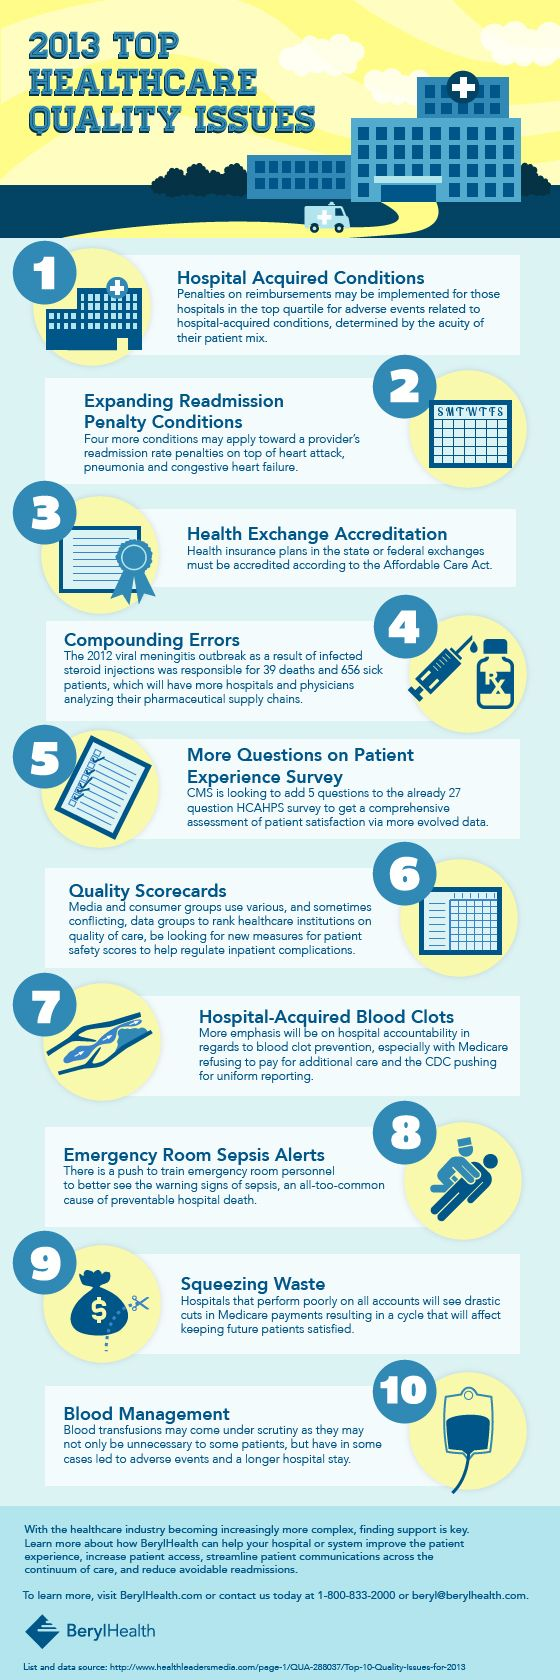 Infographic: 2013 Top Healthcare Quality Issues